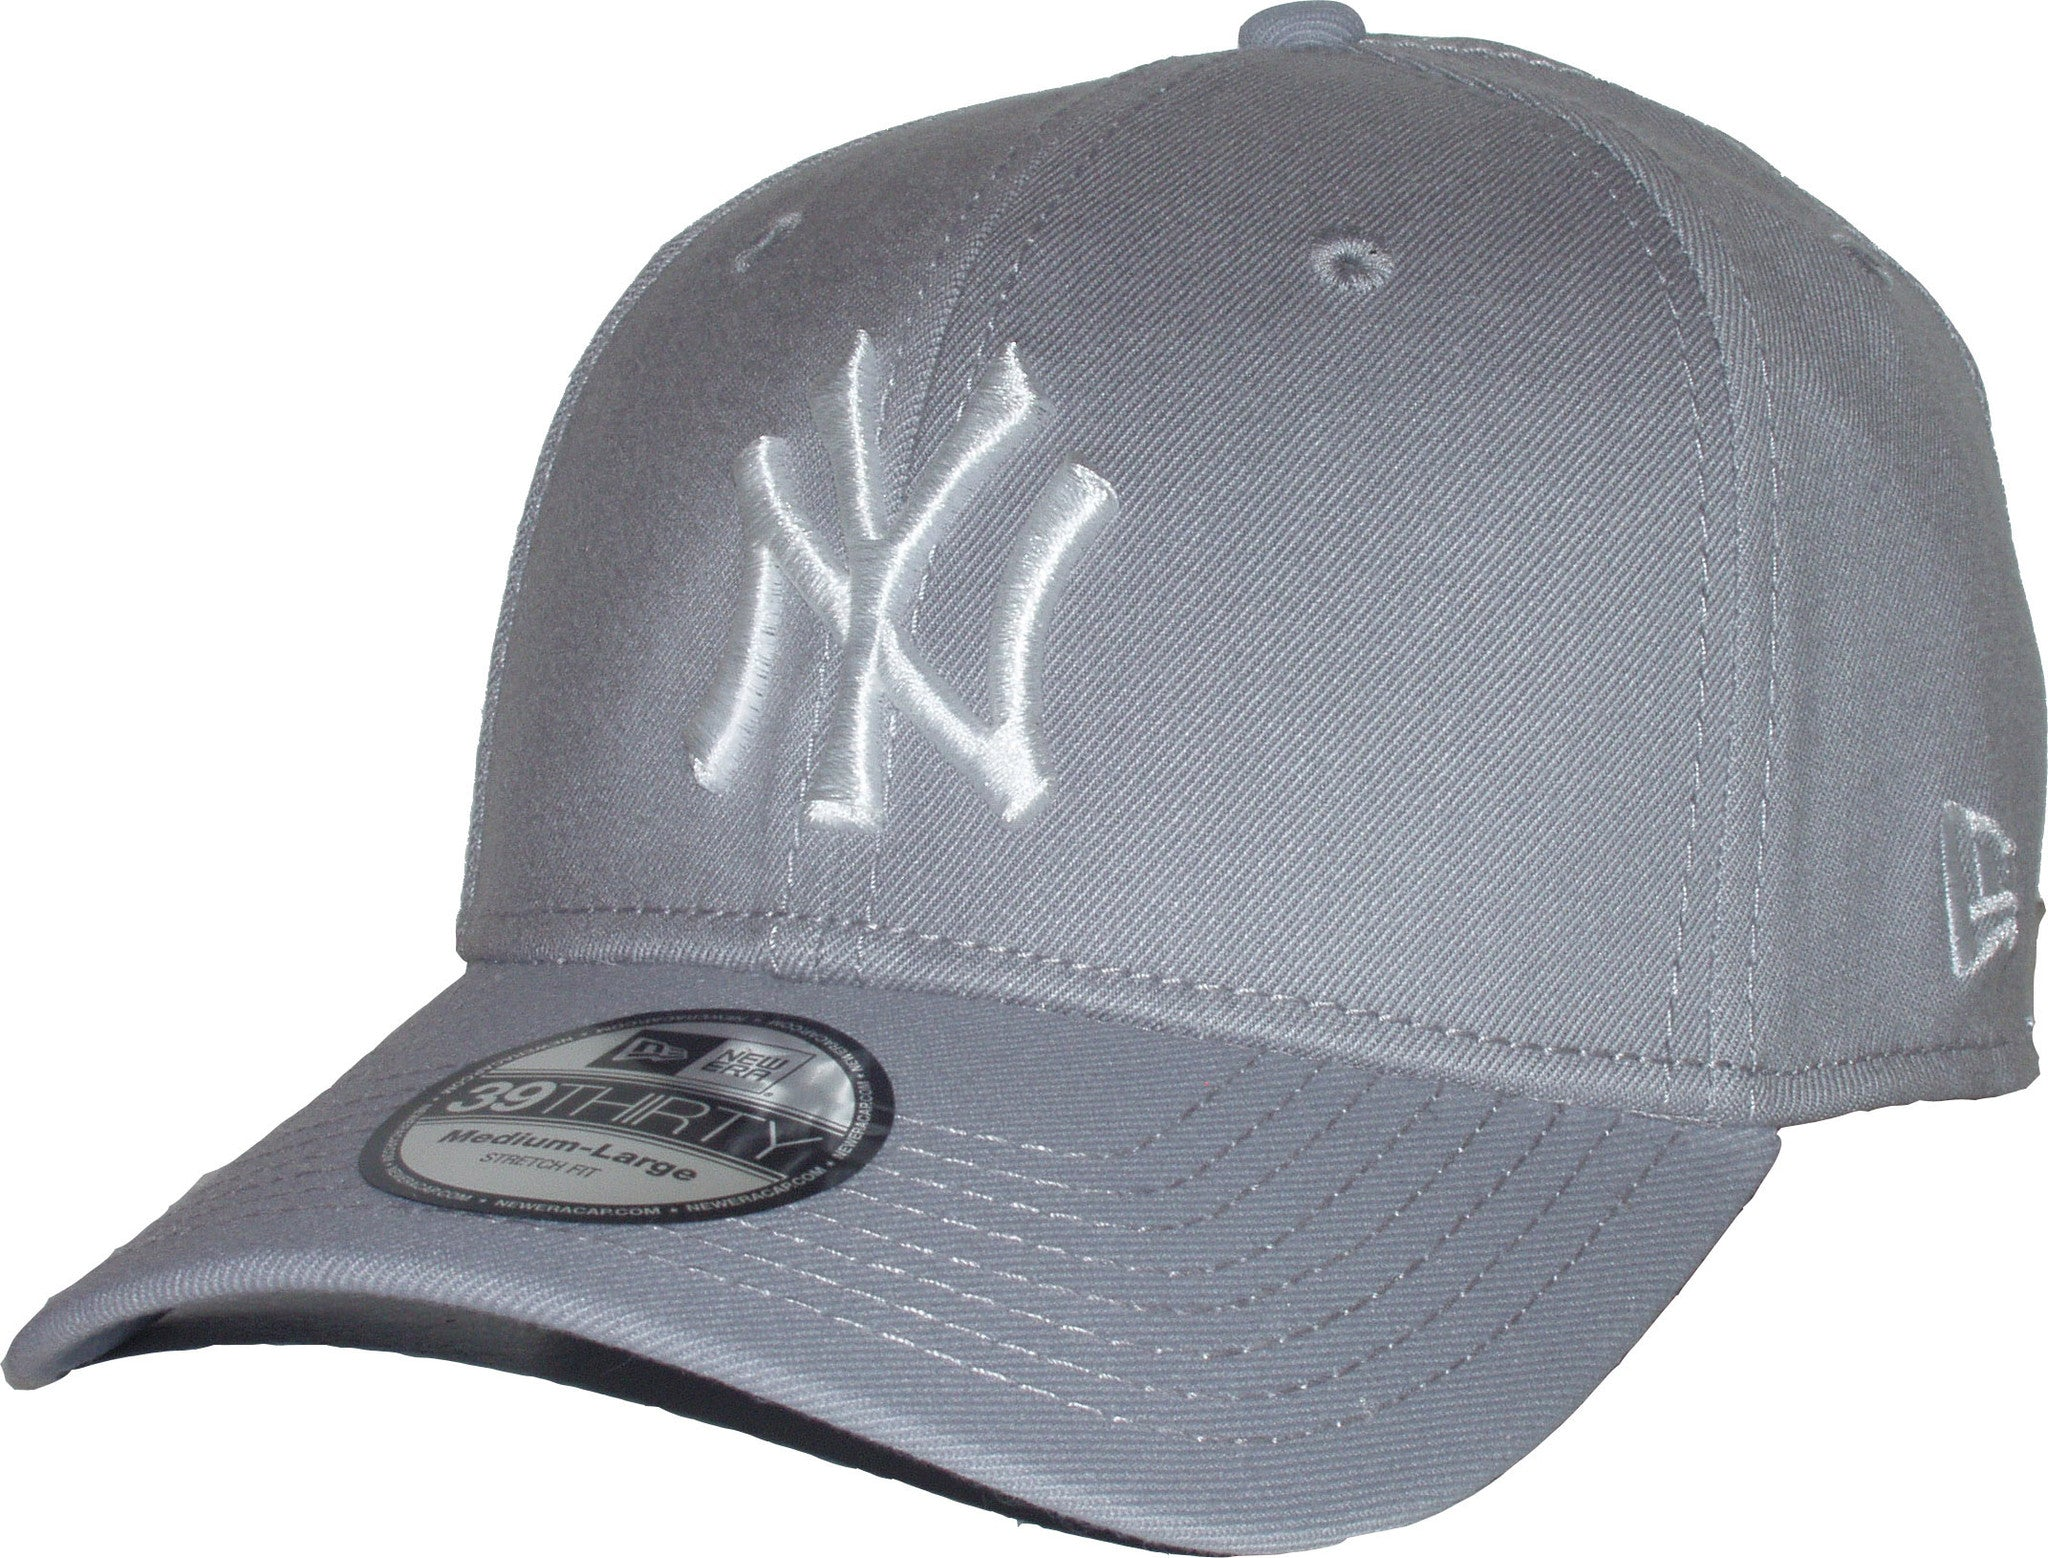 76a8d2e1988374 New Era 3930 League Basic NY Yankees Stretch Fit Baseball Cap - Grey/White  ...